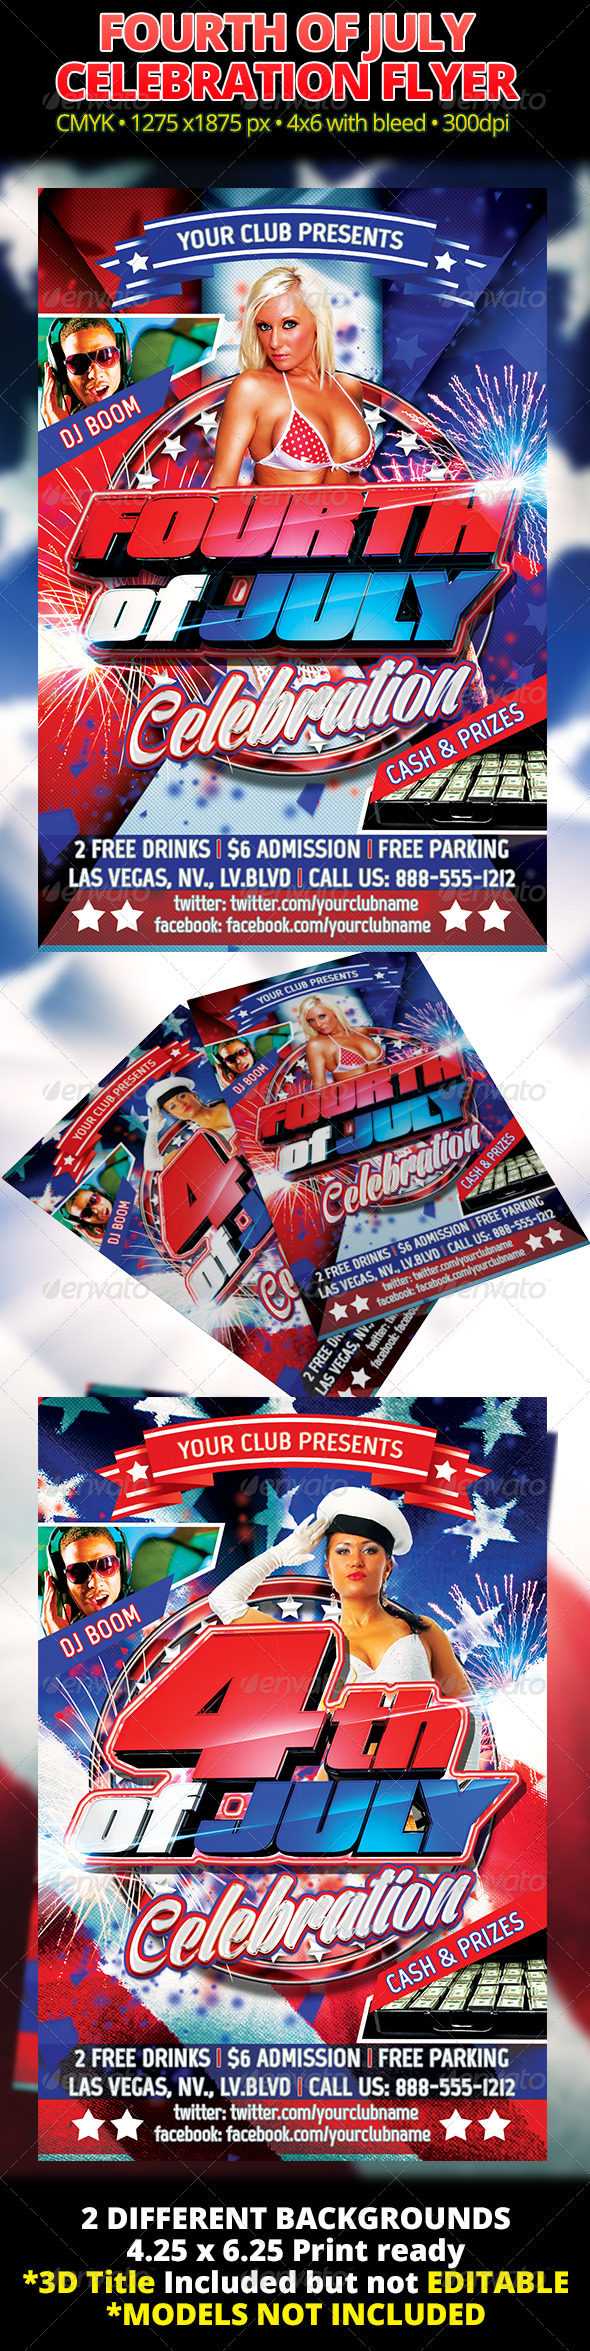 Fourth Of July Celebration Flyer - Holidays Events